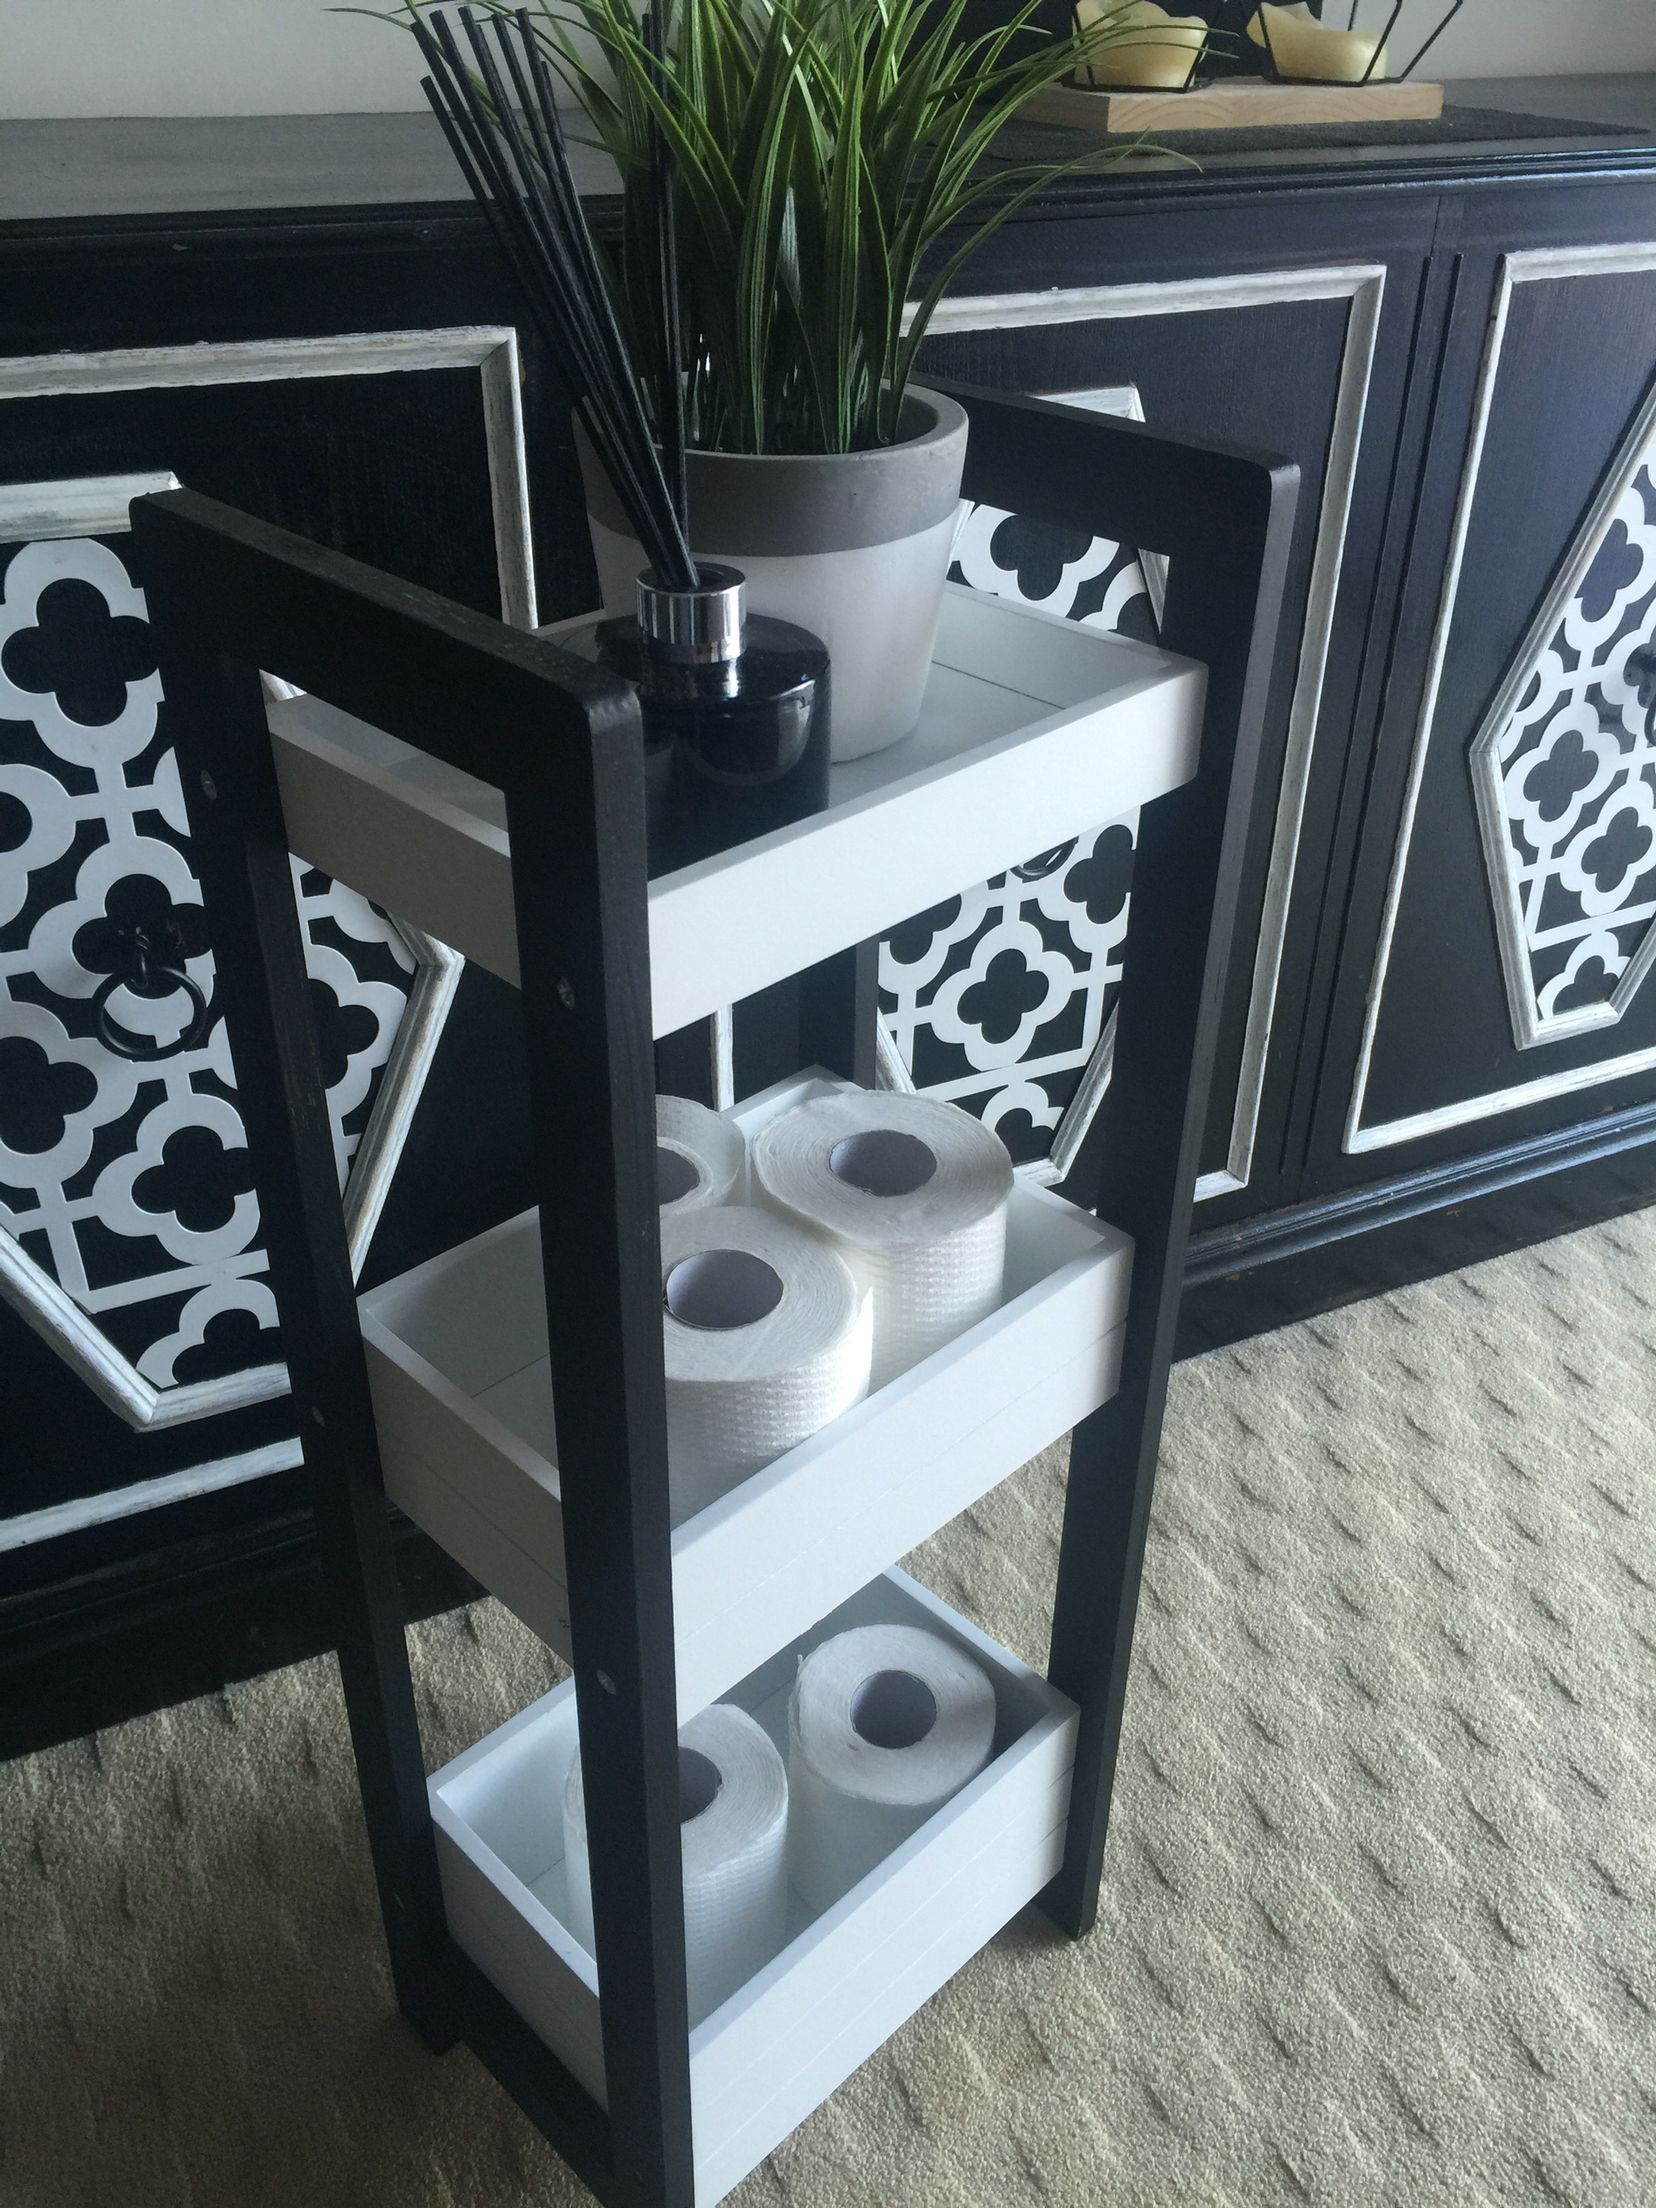 Kmart hack toilet caddy painted black and white changes the whole ...